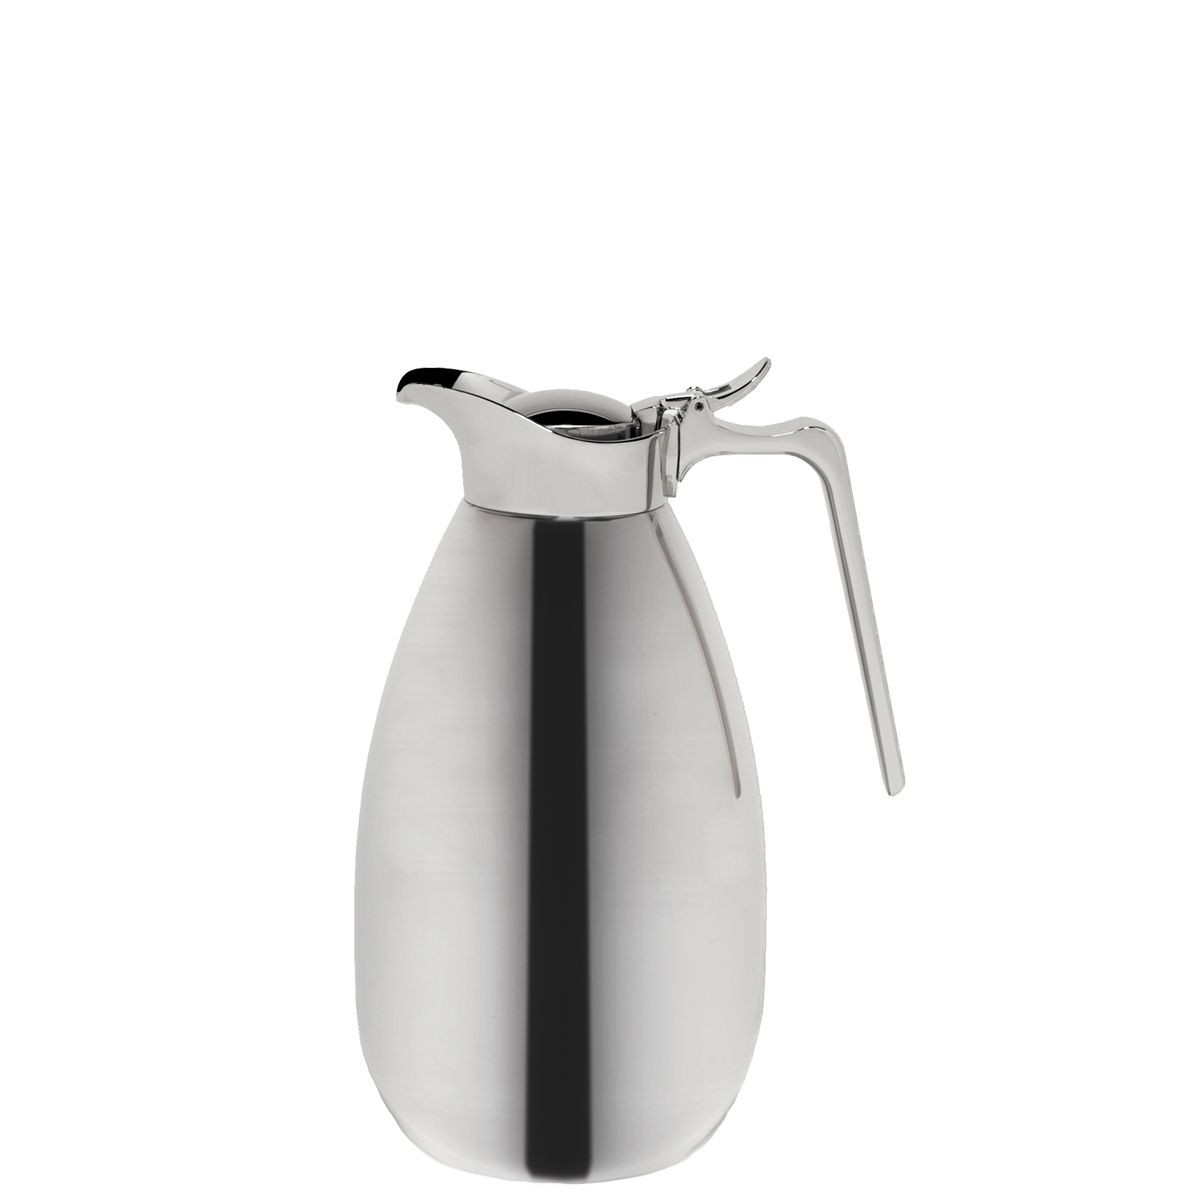 Service Ideas MEVC1500 Elite Touch Polished Stainless Steel Server, 1.5 Liter